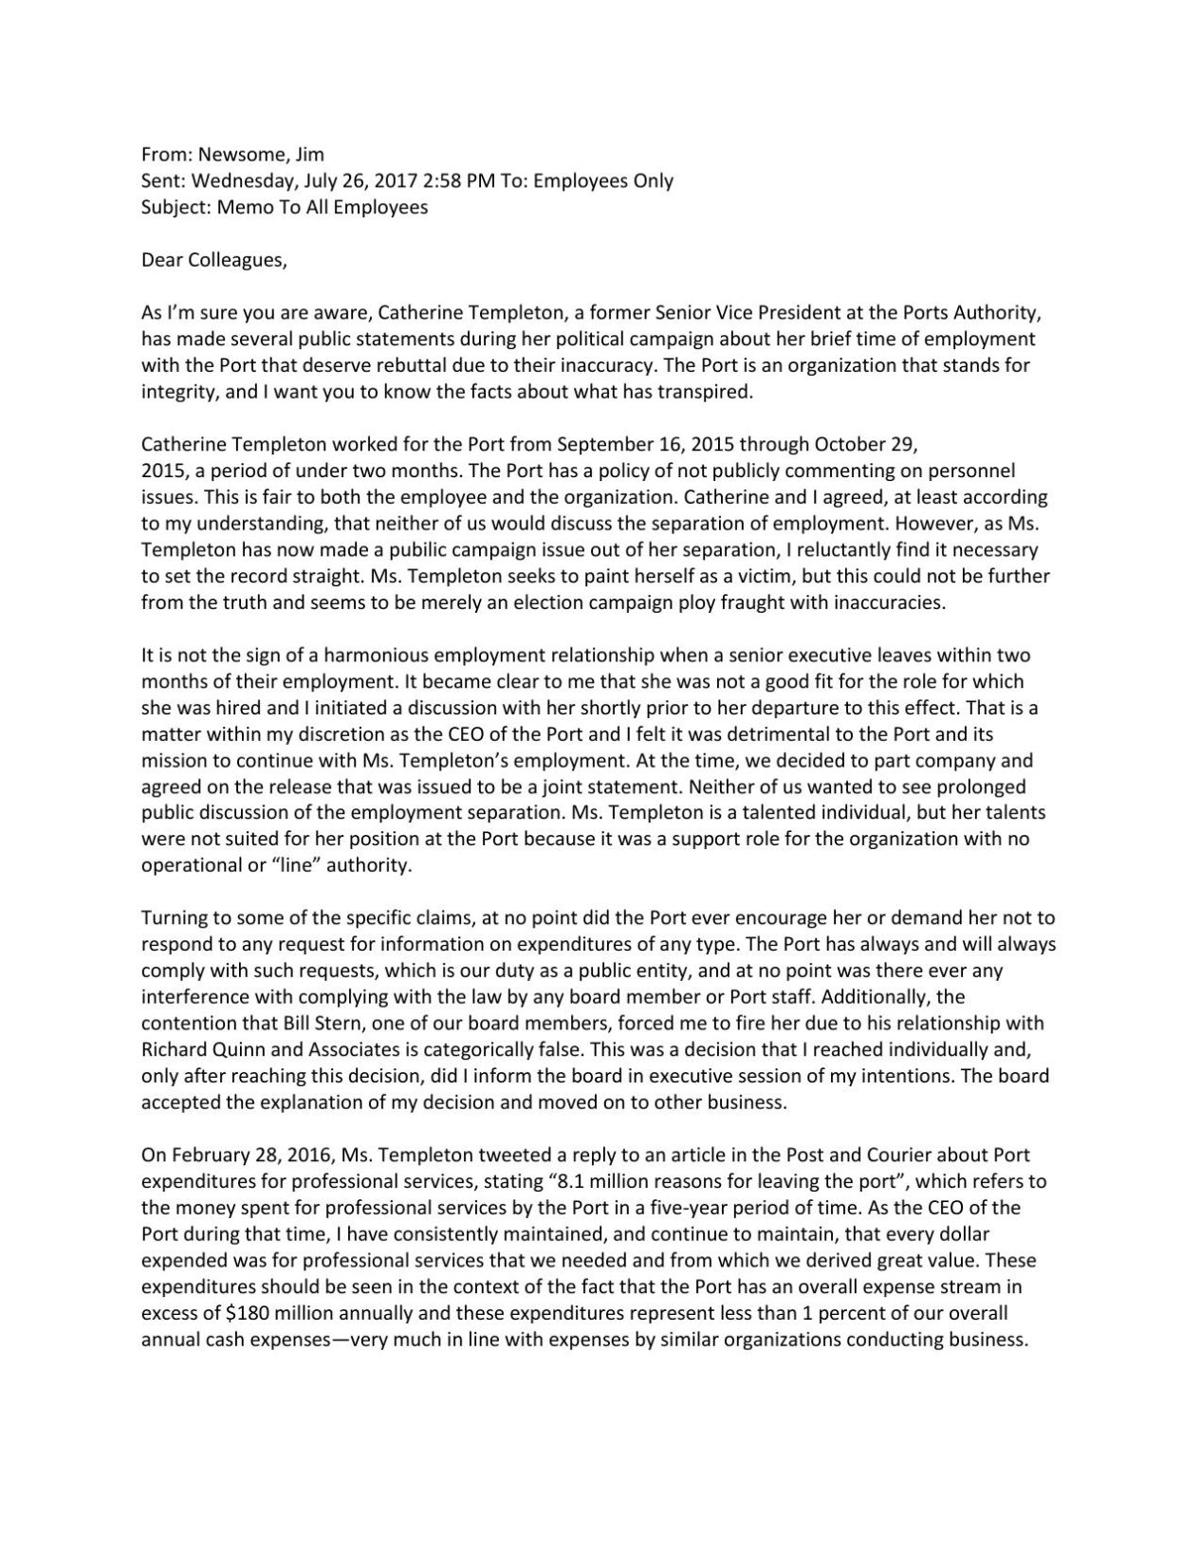 Download Pdf South Carolina Ports Authority President Jim Newsome's Email  To Employees